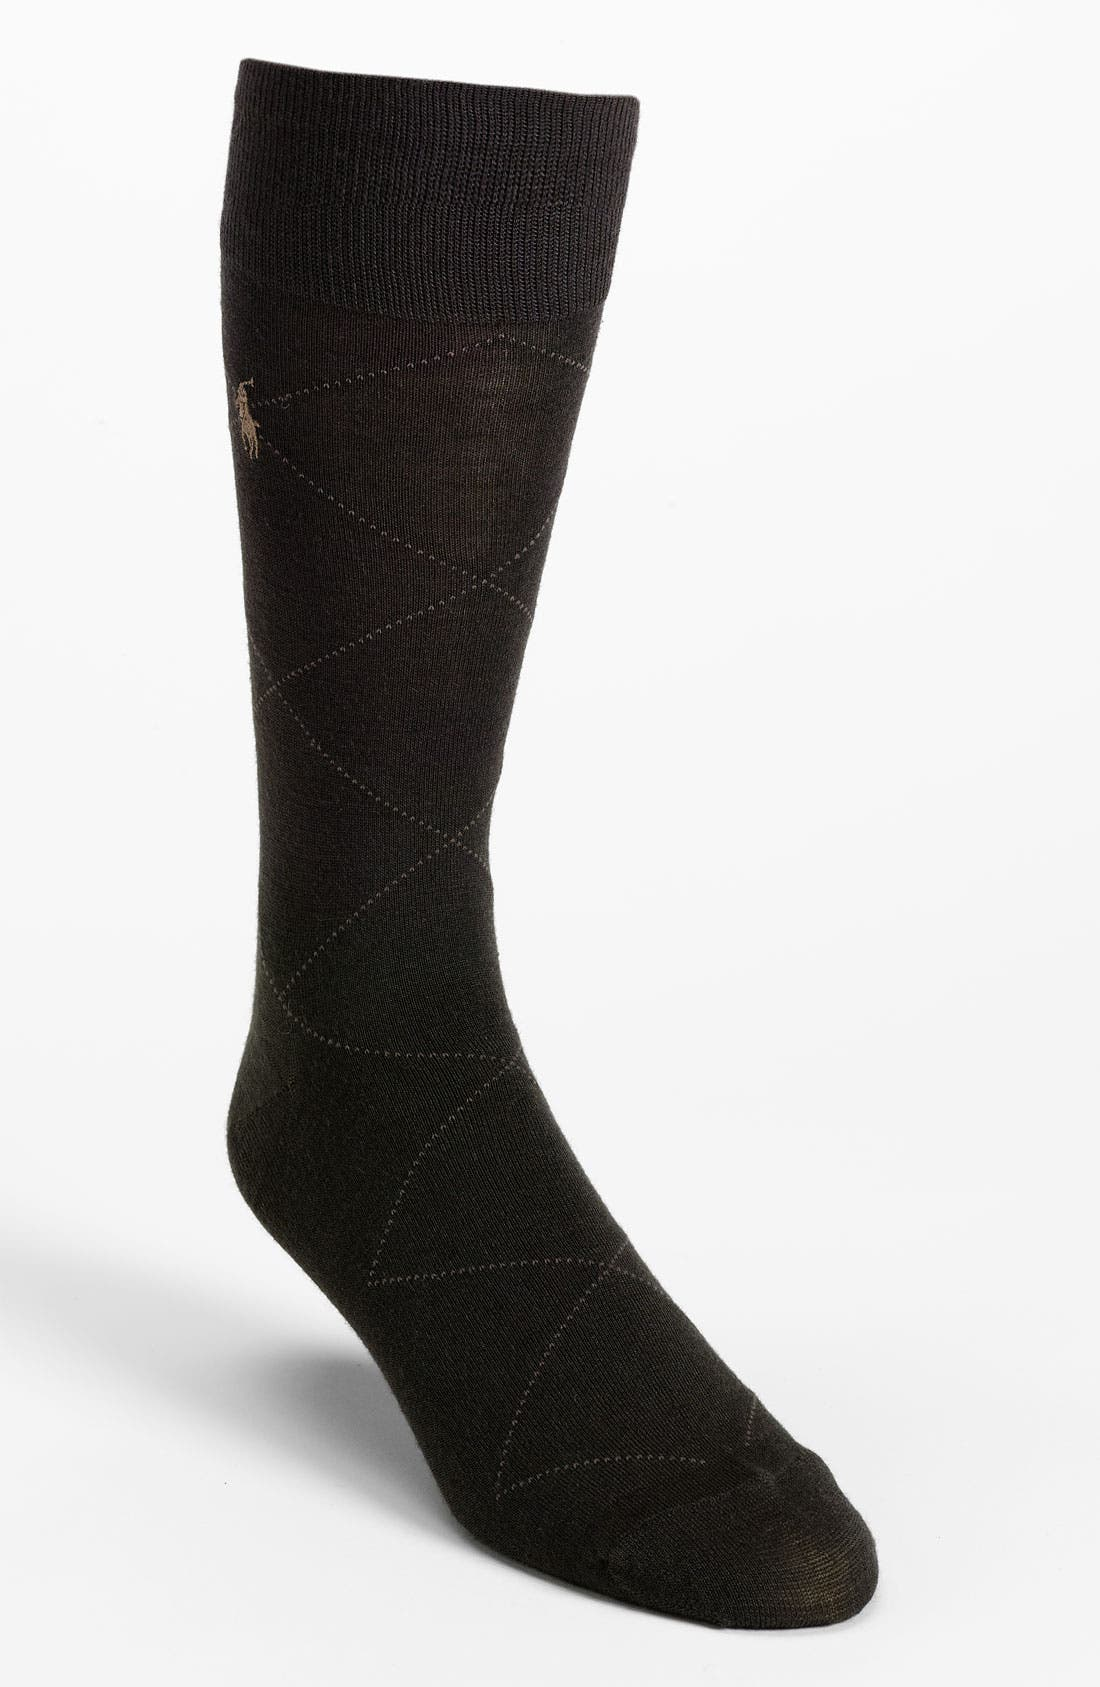 Main Image - Polo Ralph Lauren Argyle Socks